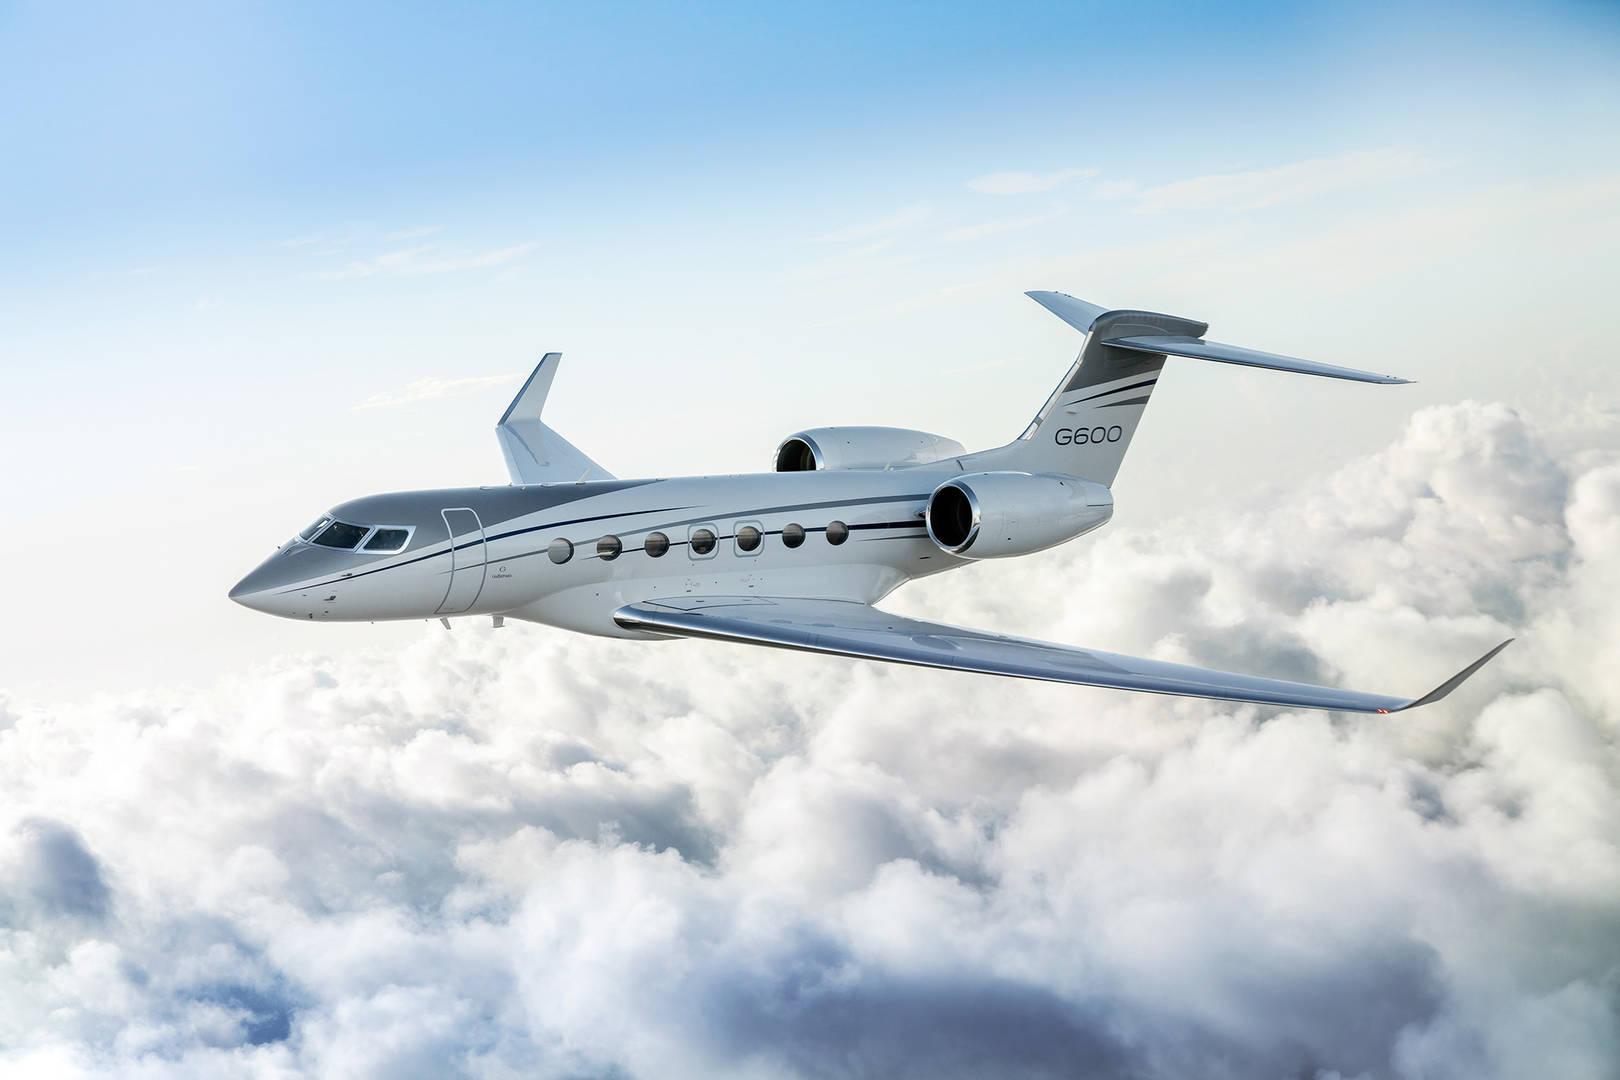 Gulfstream G600 Receives Type Certificate From FAA